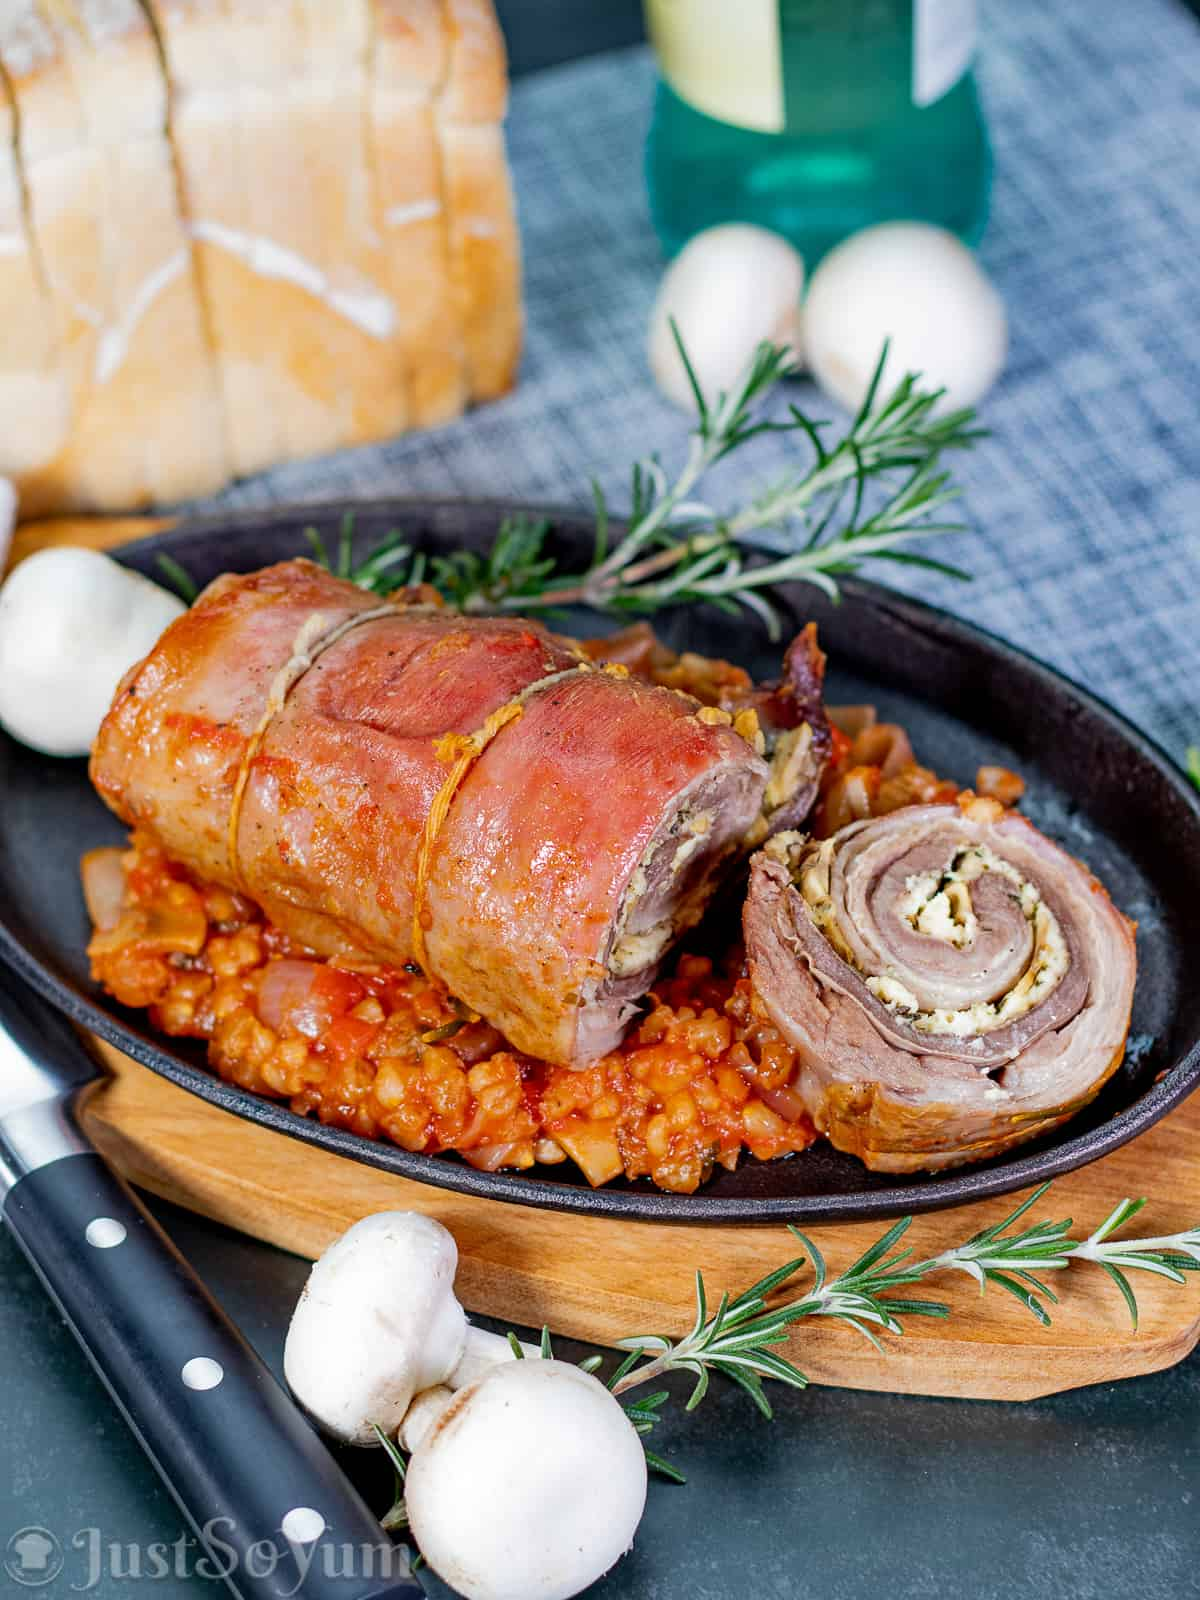 main-website-image-for-slow-cooked-stuffed-lamb-breast